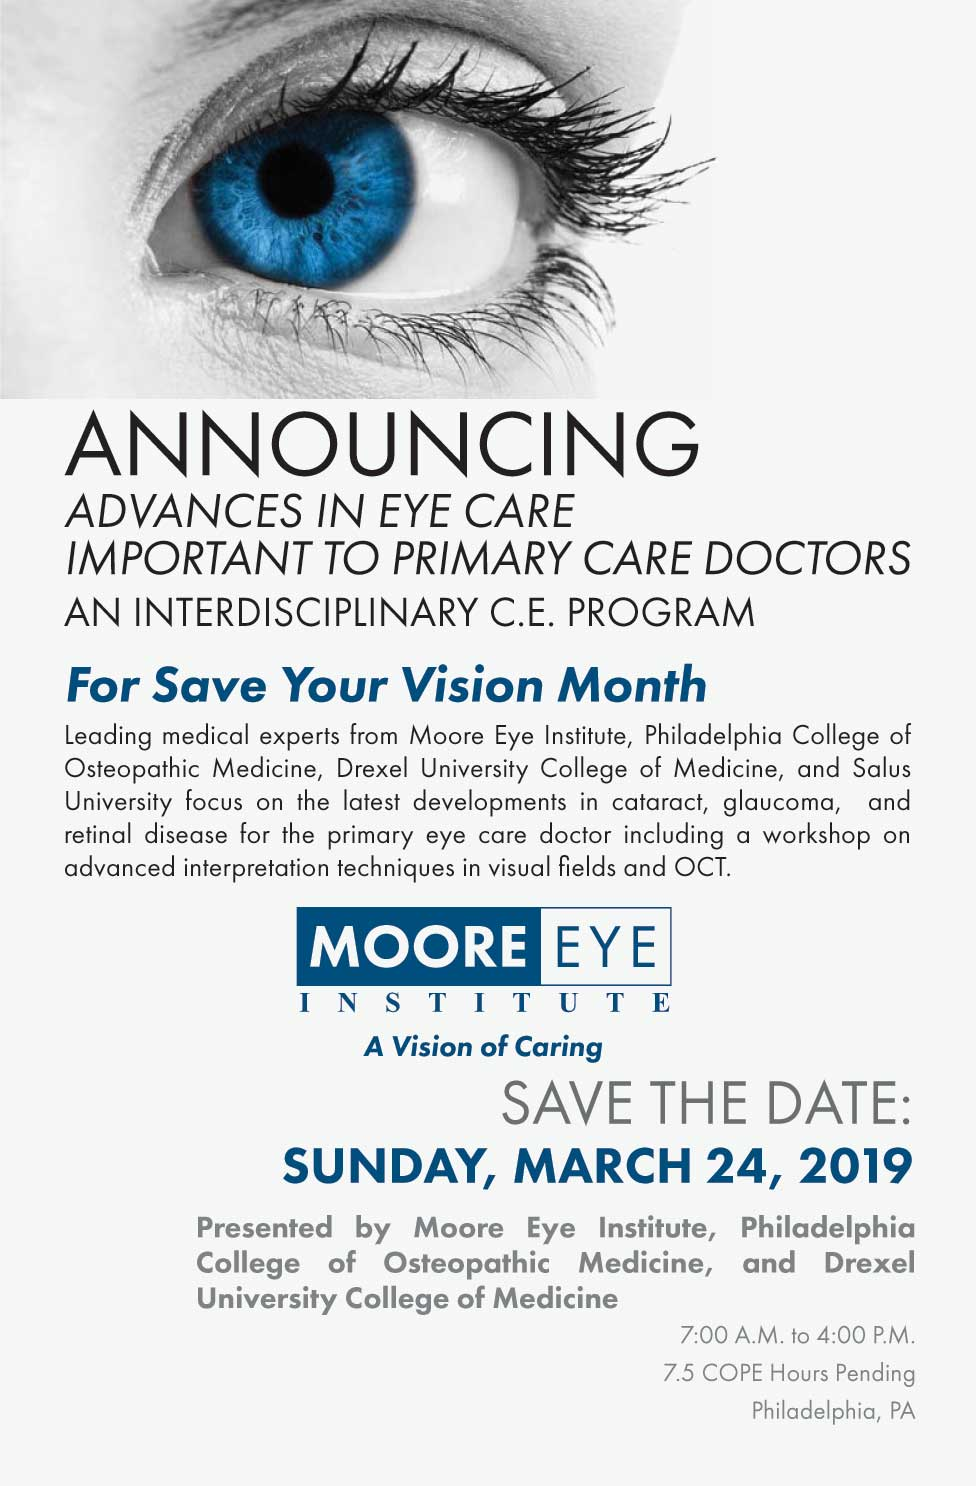 Advances in Eye Care Important to Primary Care Doctors